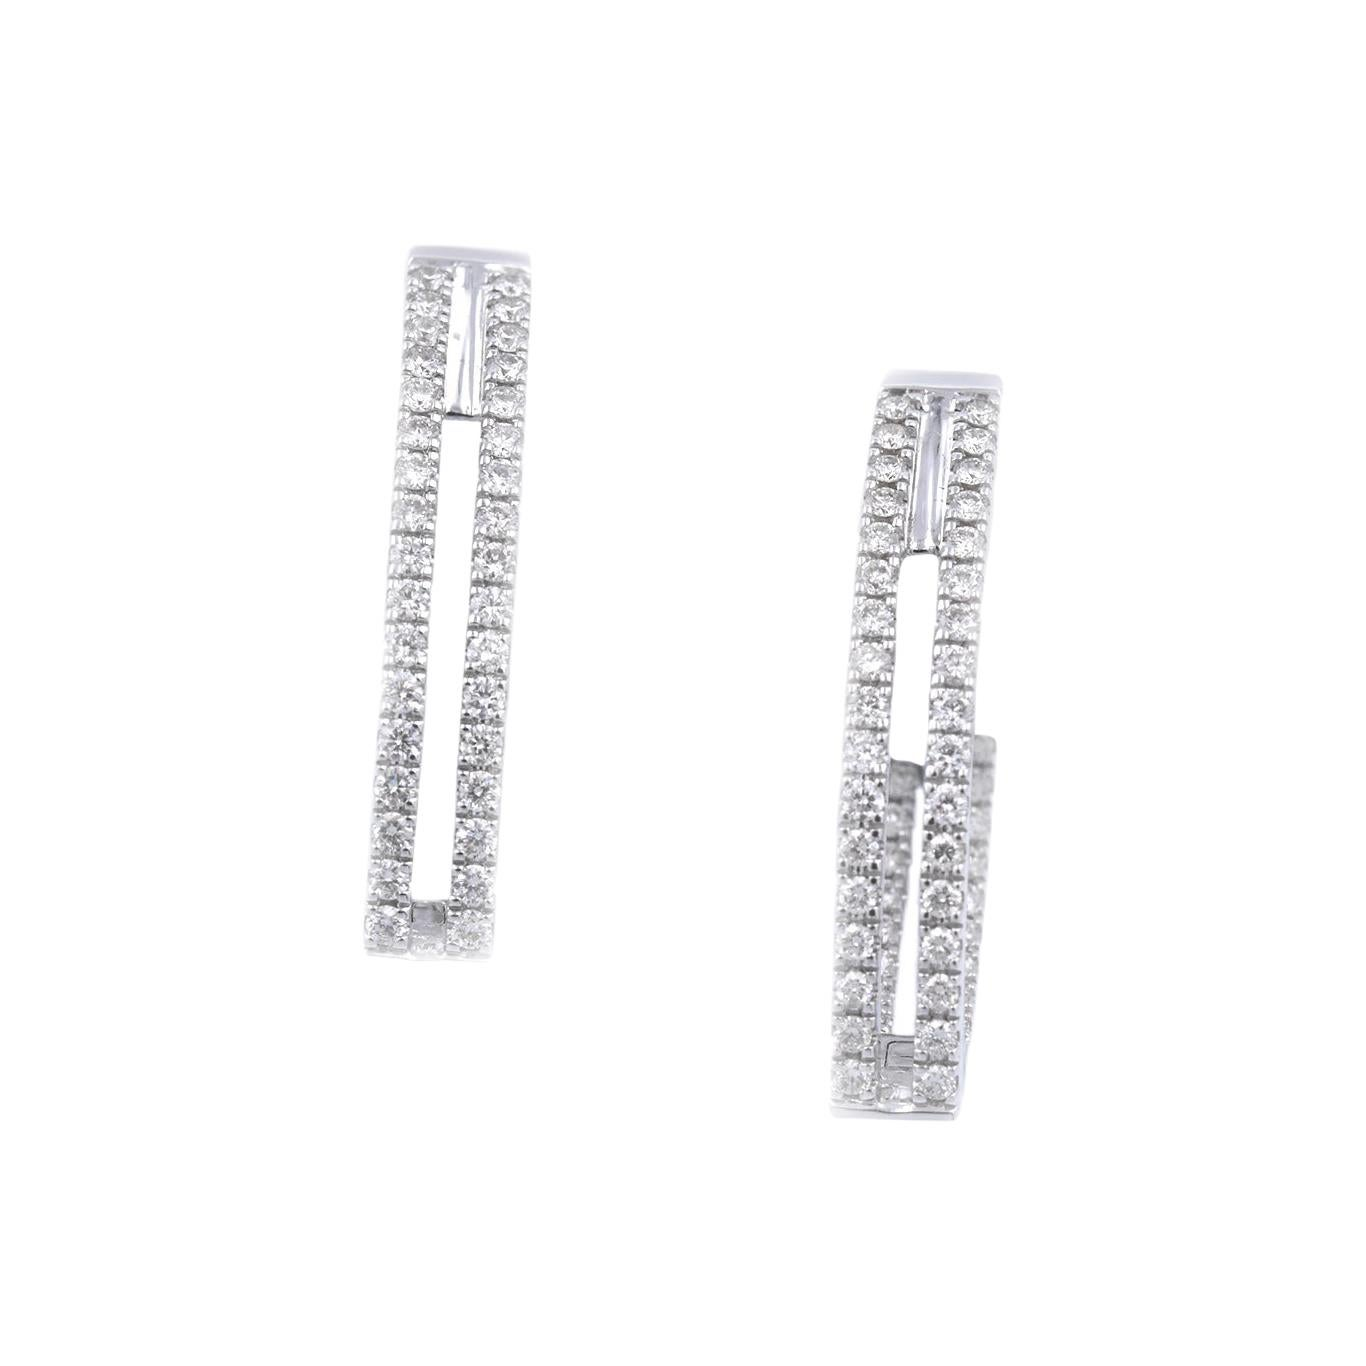 14 Karat White Gold Diamond Huggie Earrings